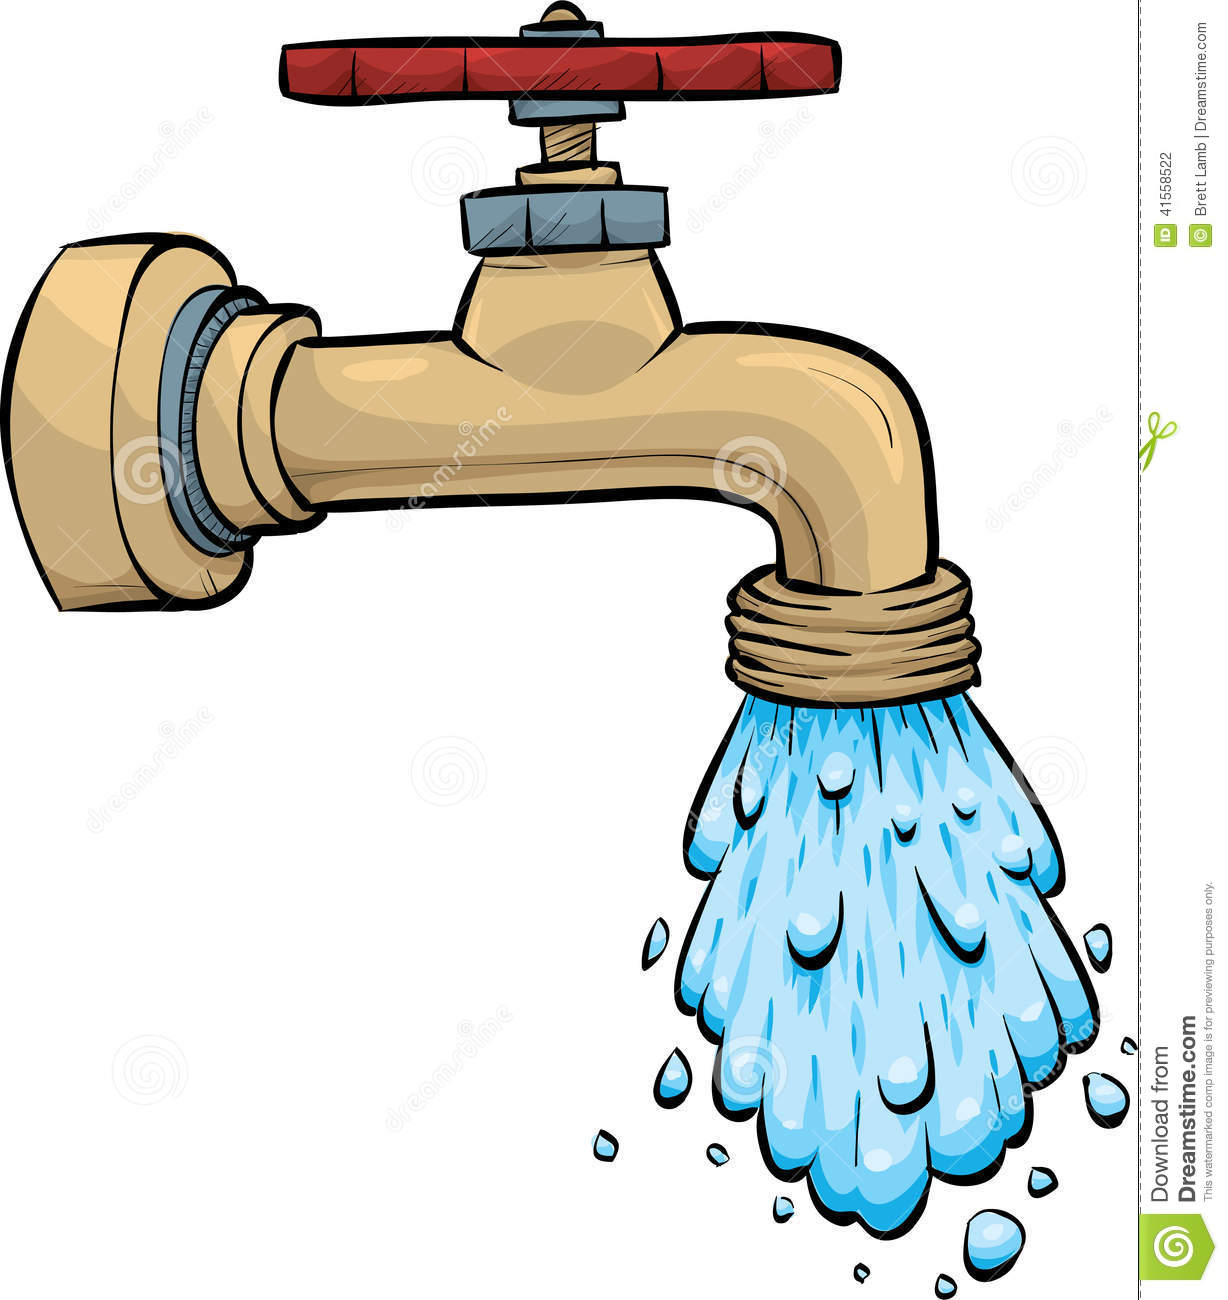 Water Faucet stock illustration. Illustration of faucet ...